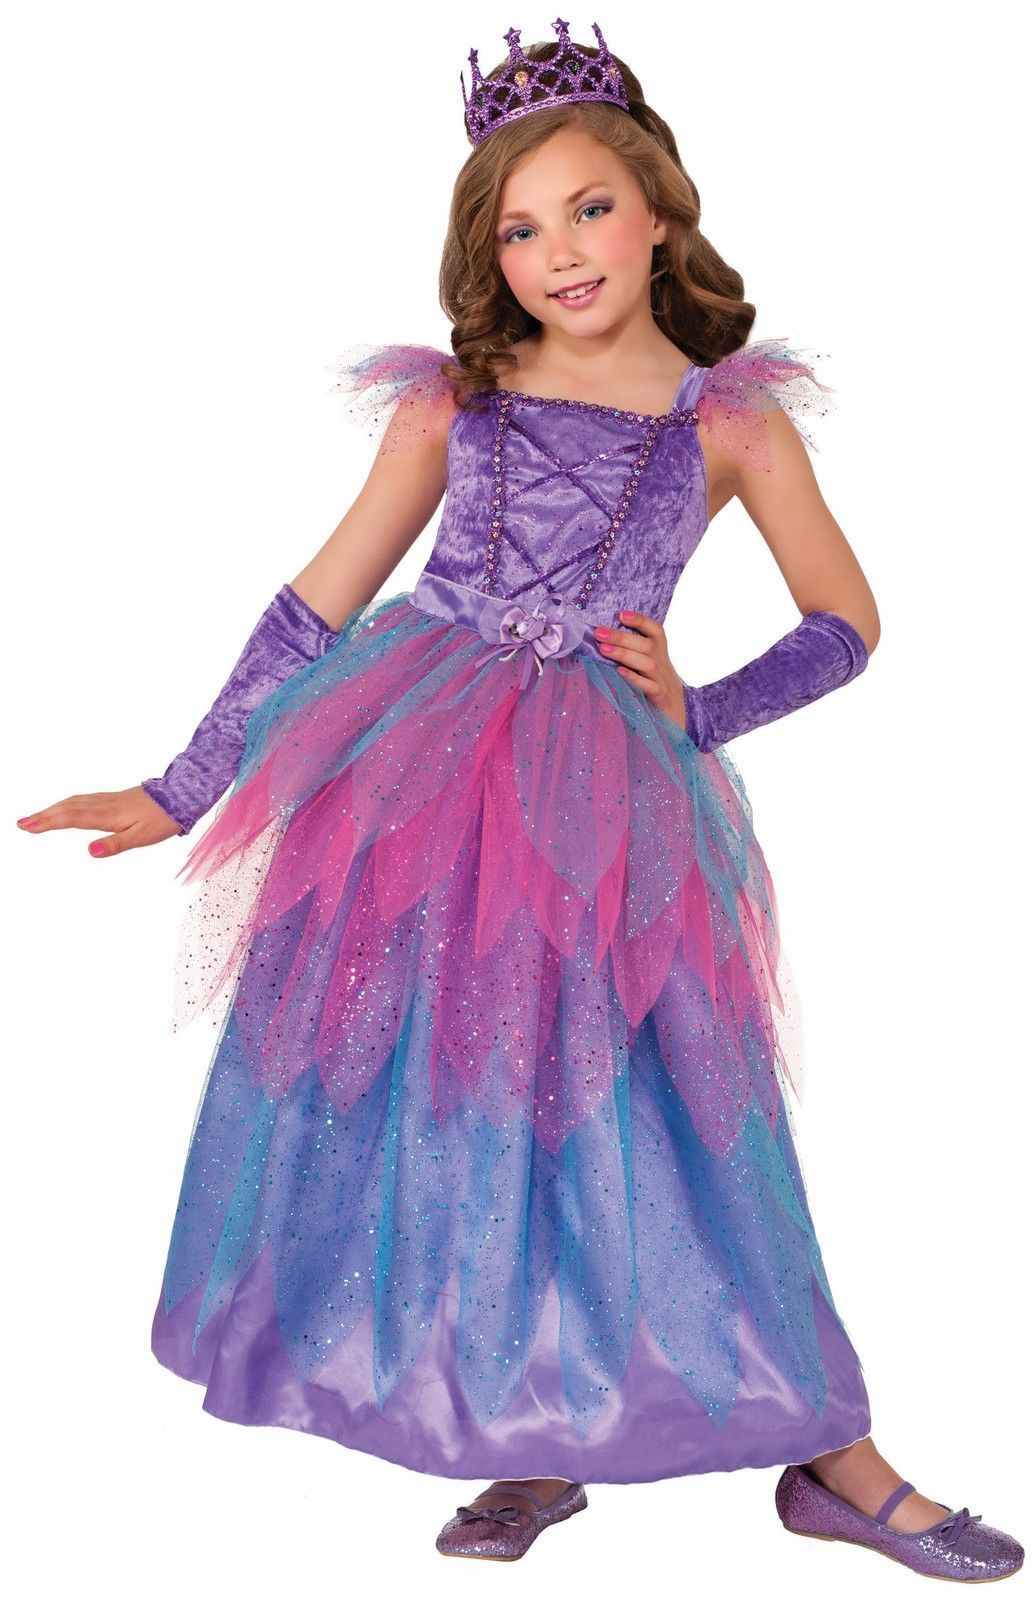 Happily Ever After Royal Purple Fairy Princess Girls Costume w/Glovettes, Forum